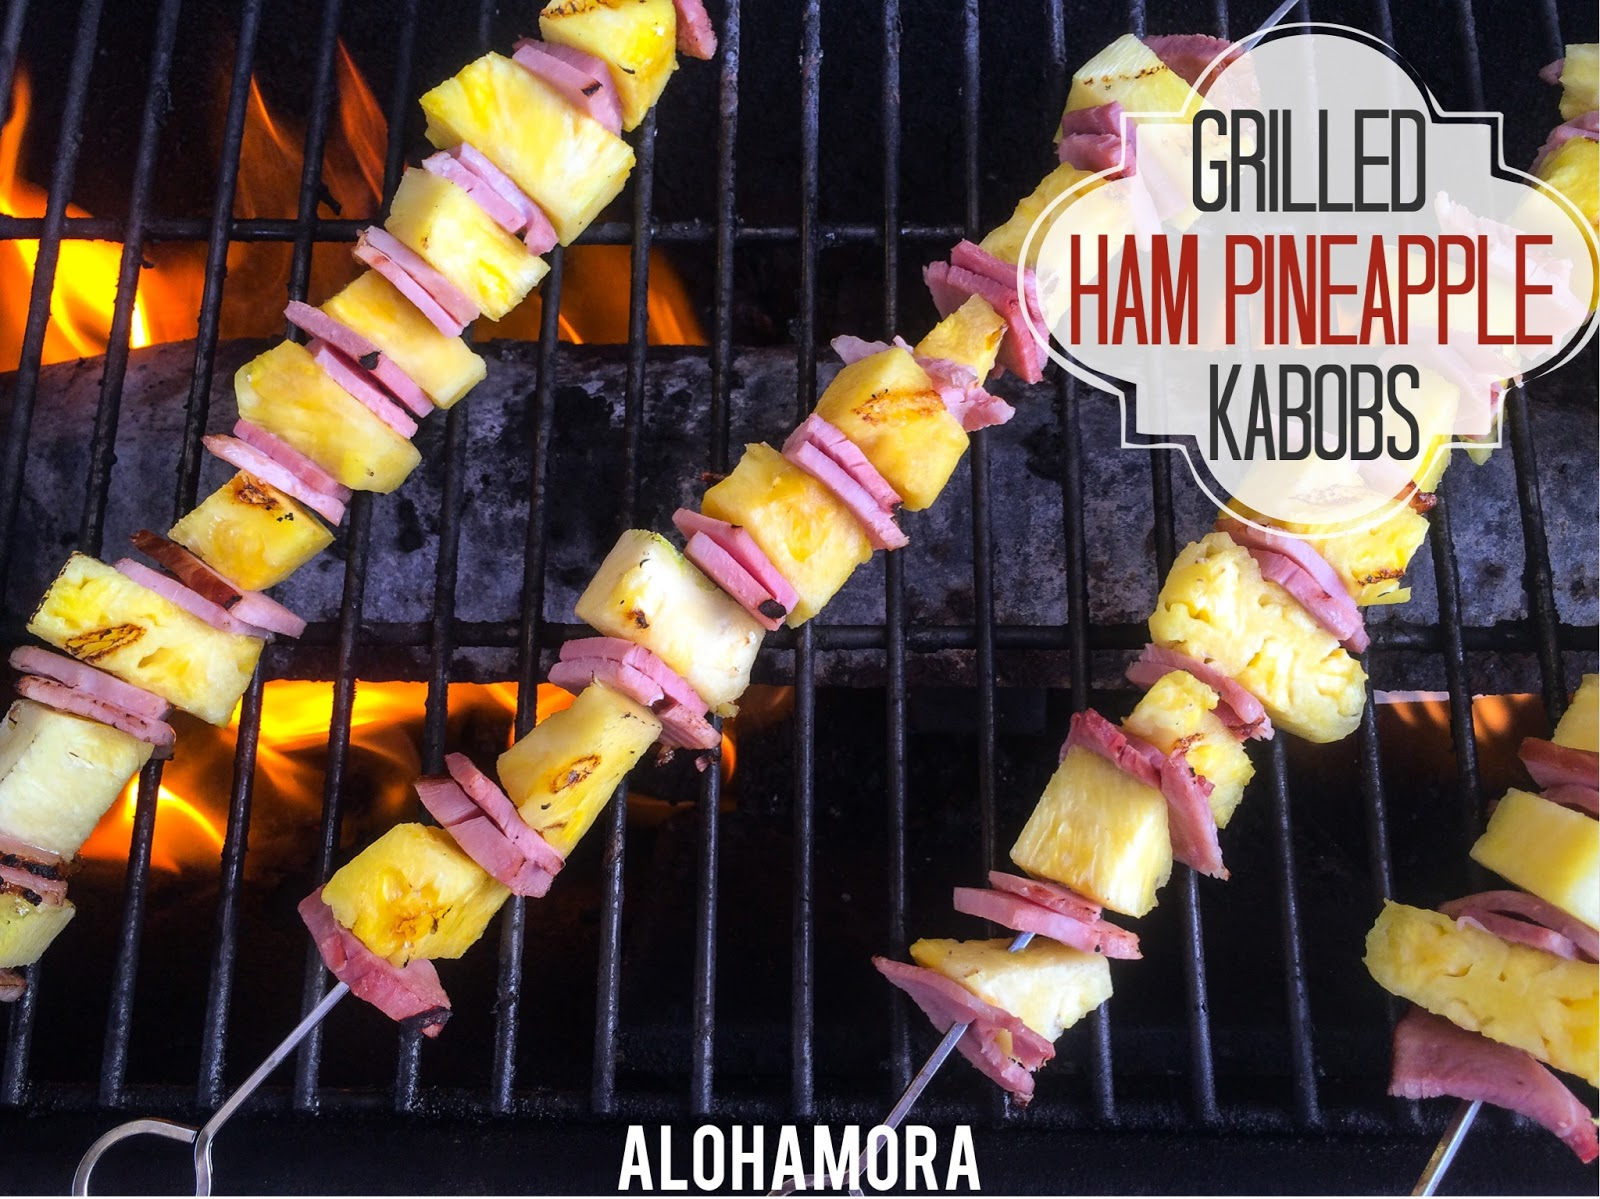 Grilled Ham and Pineapple Kabobs is an quick and easy dinner the whole family will enjoy.  Use your leftover ham and enjoy the sweetly grilled pineapple with the slightly crispy ham.  It is delicious!  Alohamora Open a BOok http://alohamoraopenabook.blogspot.com/ gluten free, nut free, egg free, fast, simple, grill, kid friendly